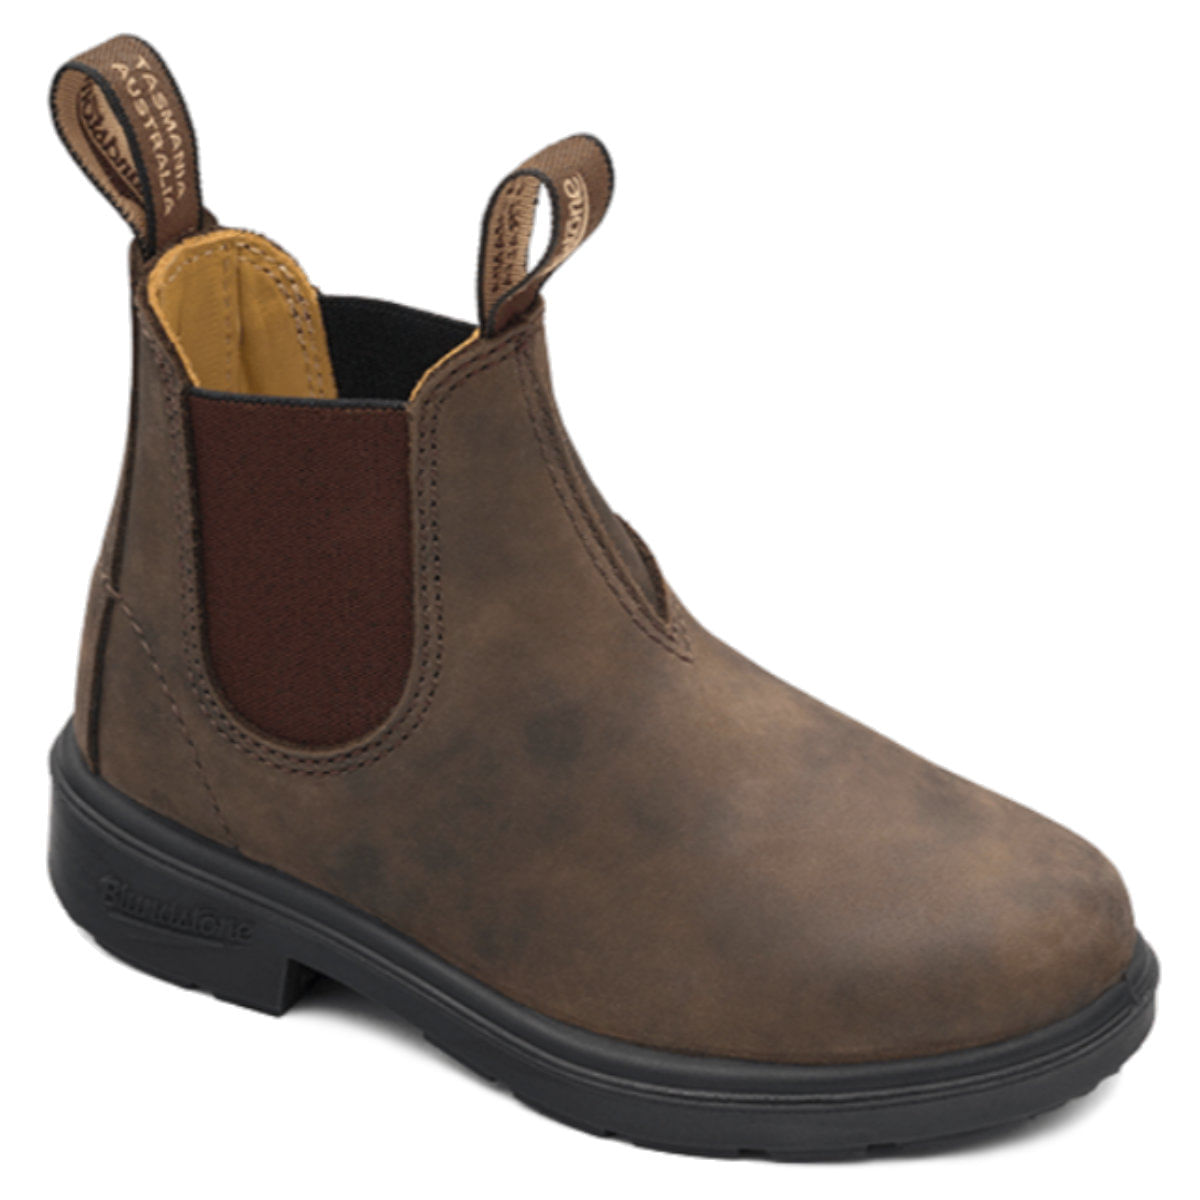 Blundstone Style 565 Boots - Kids